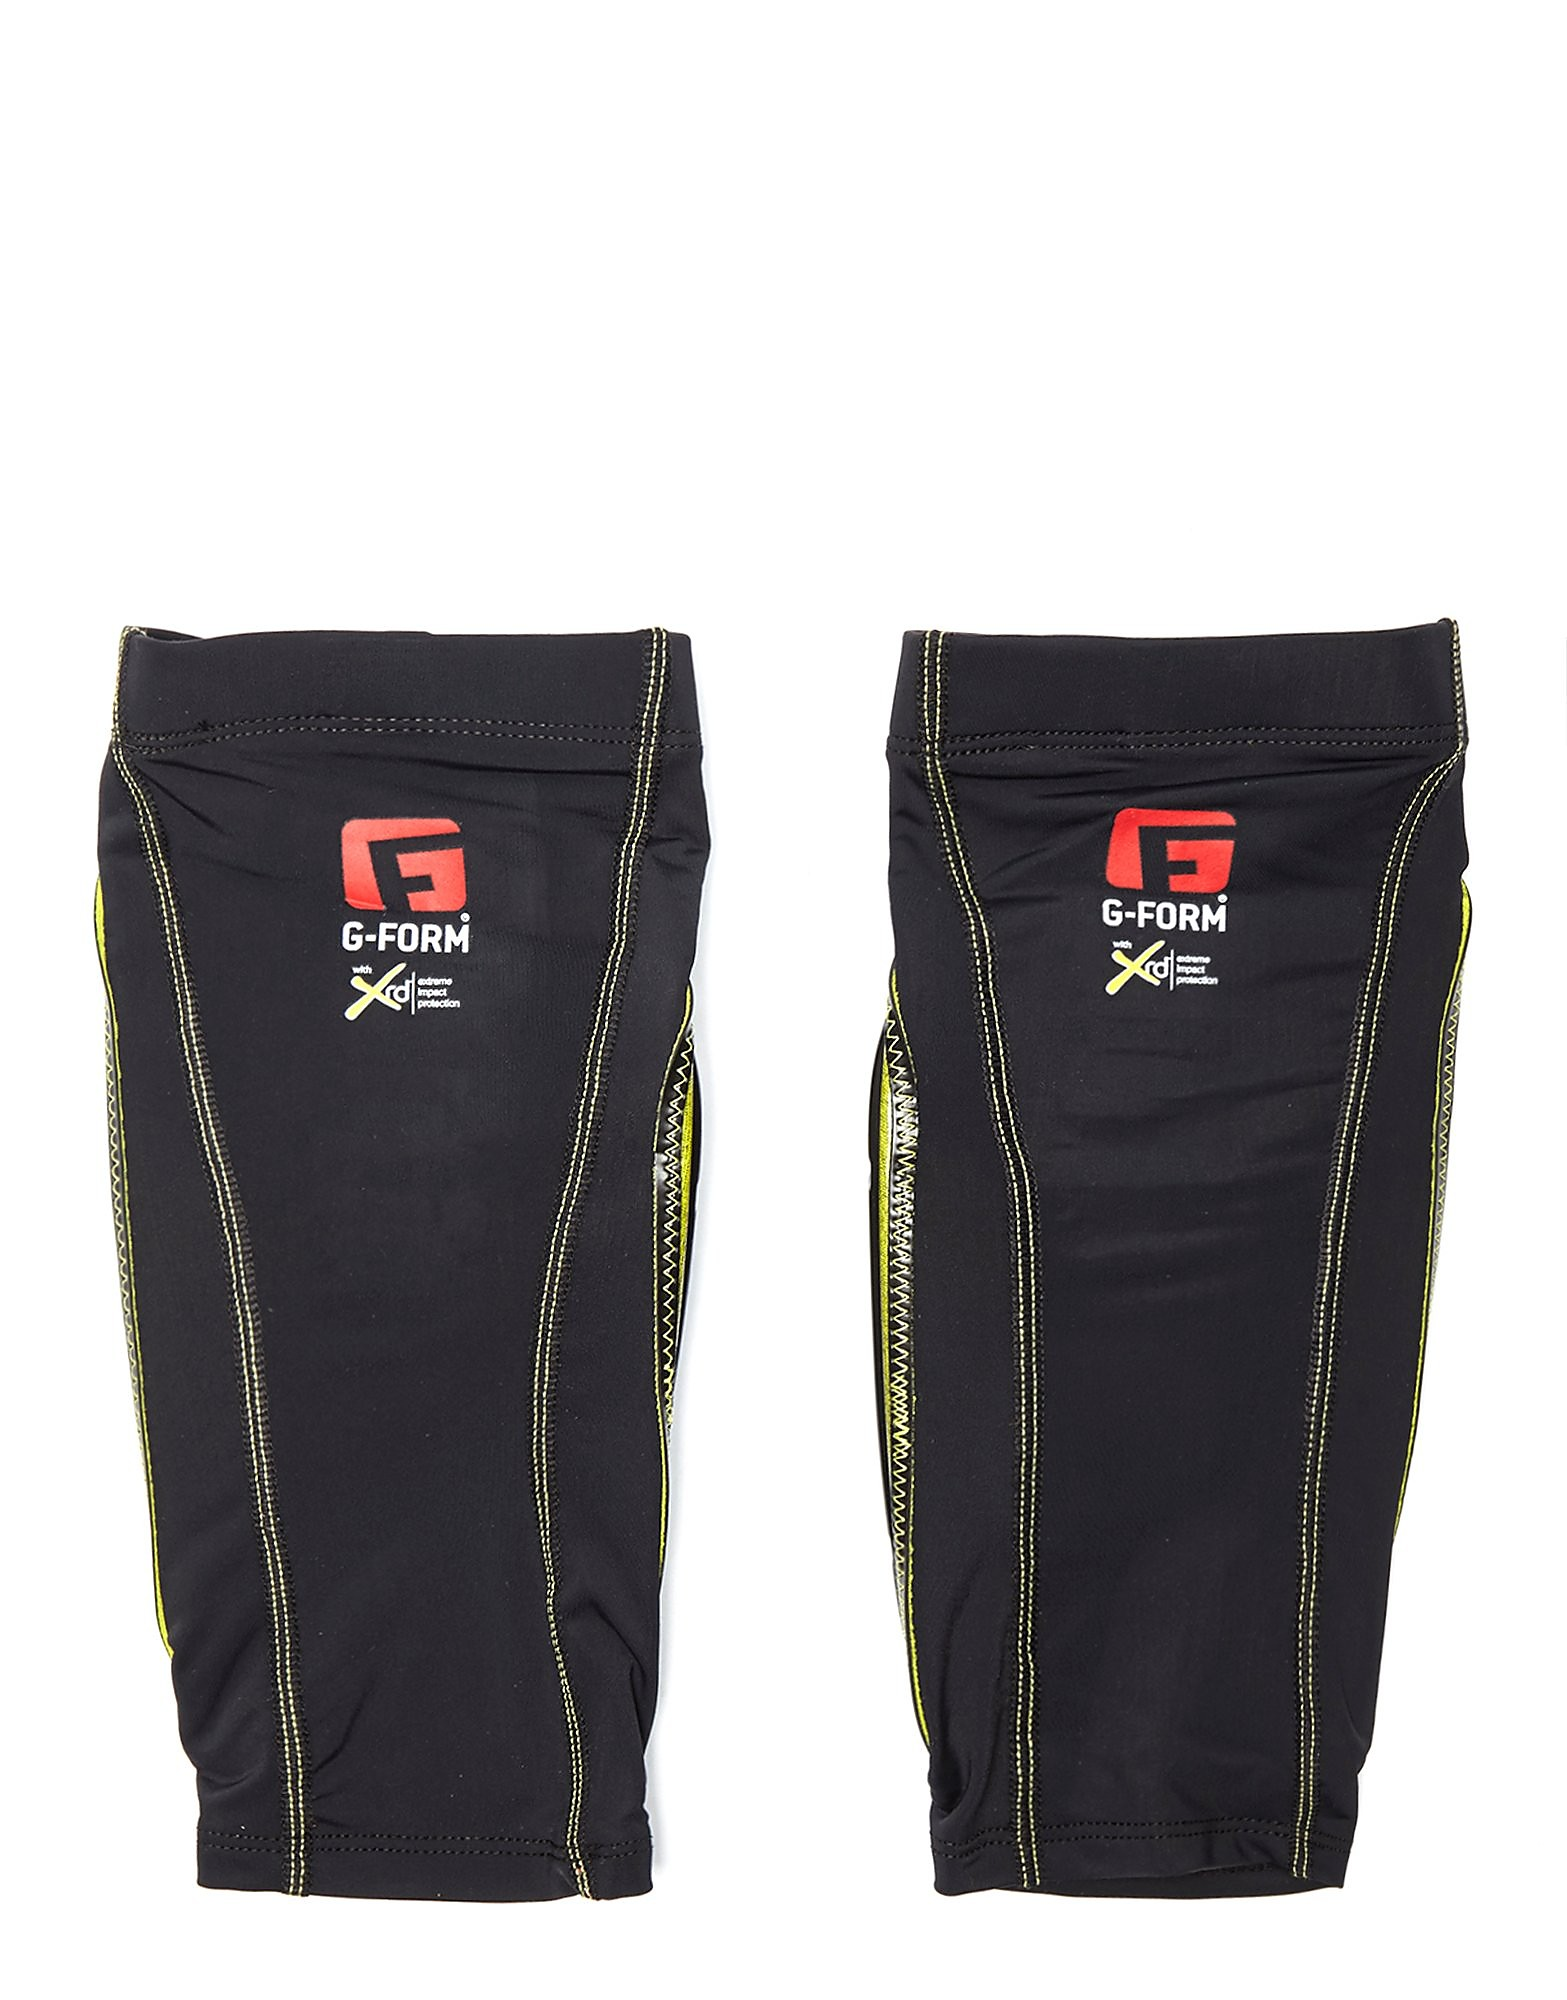 G-Form Elite Shinguards